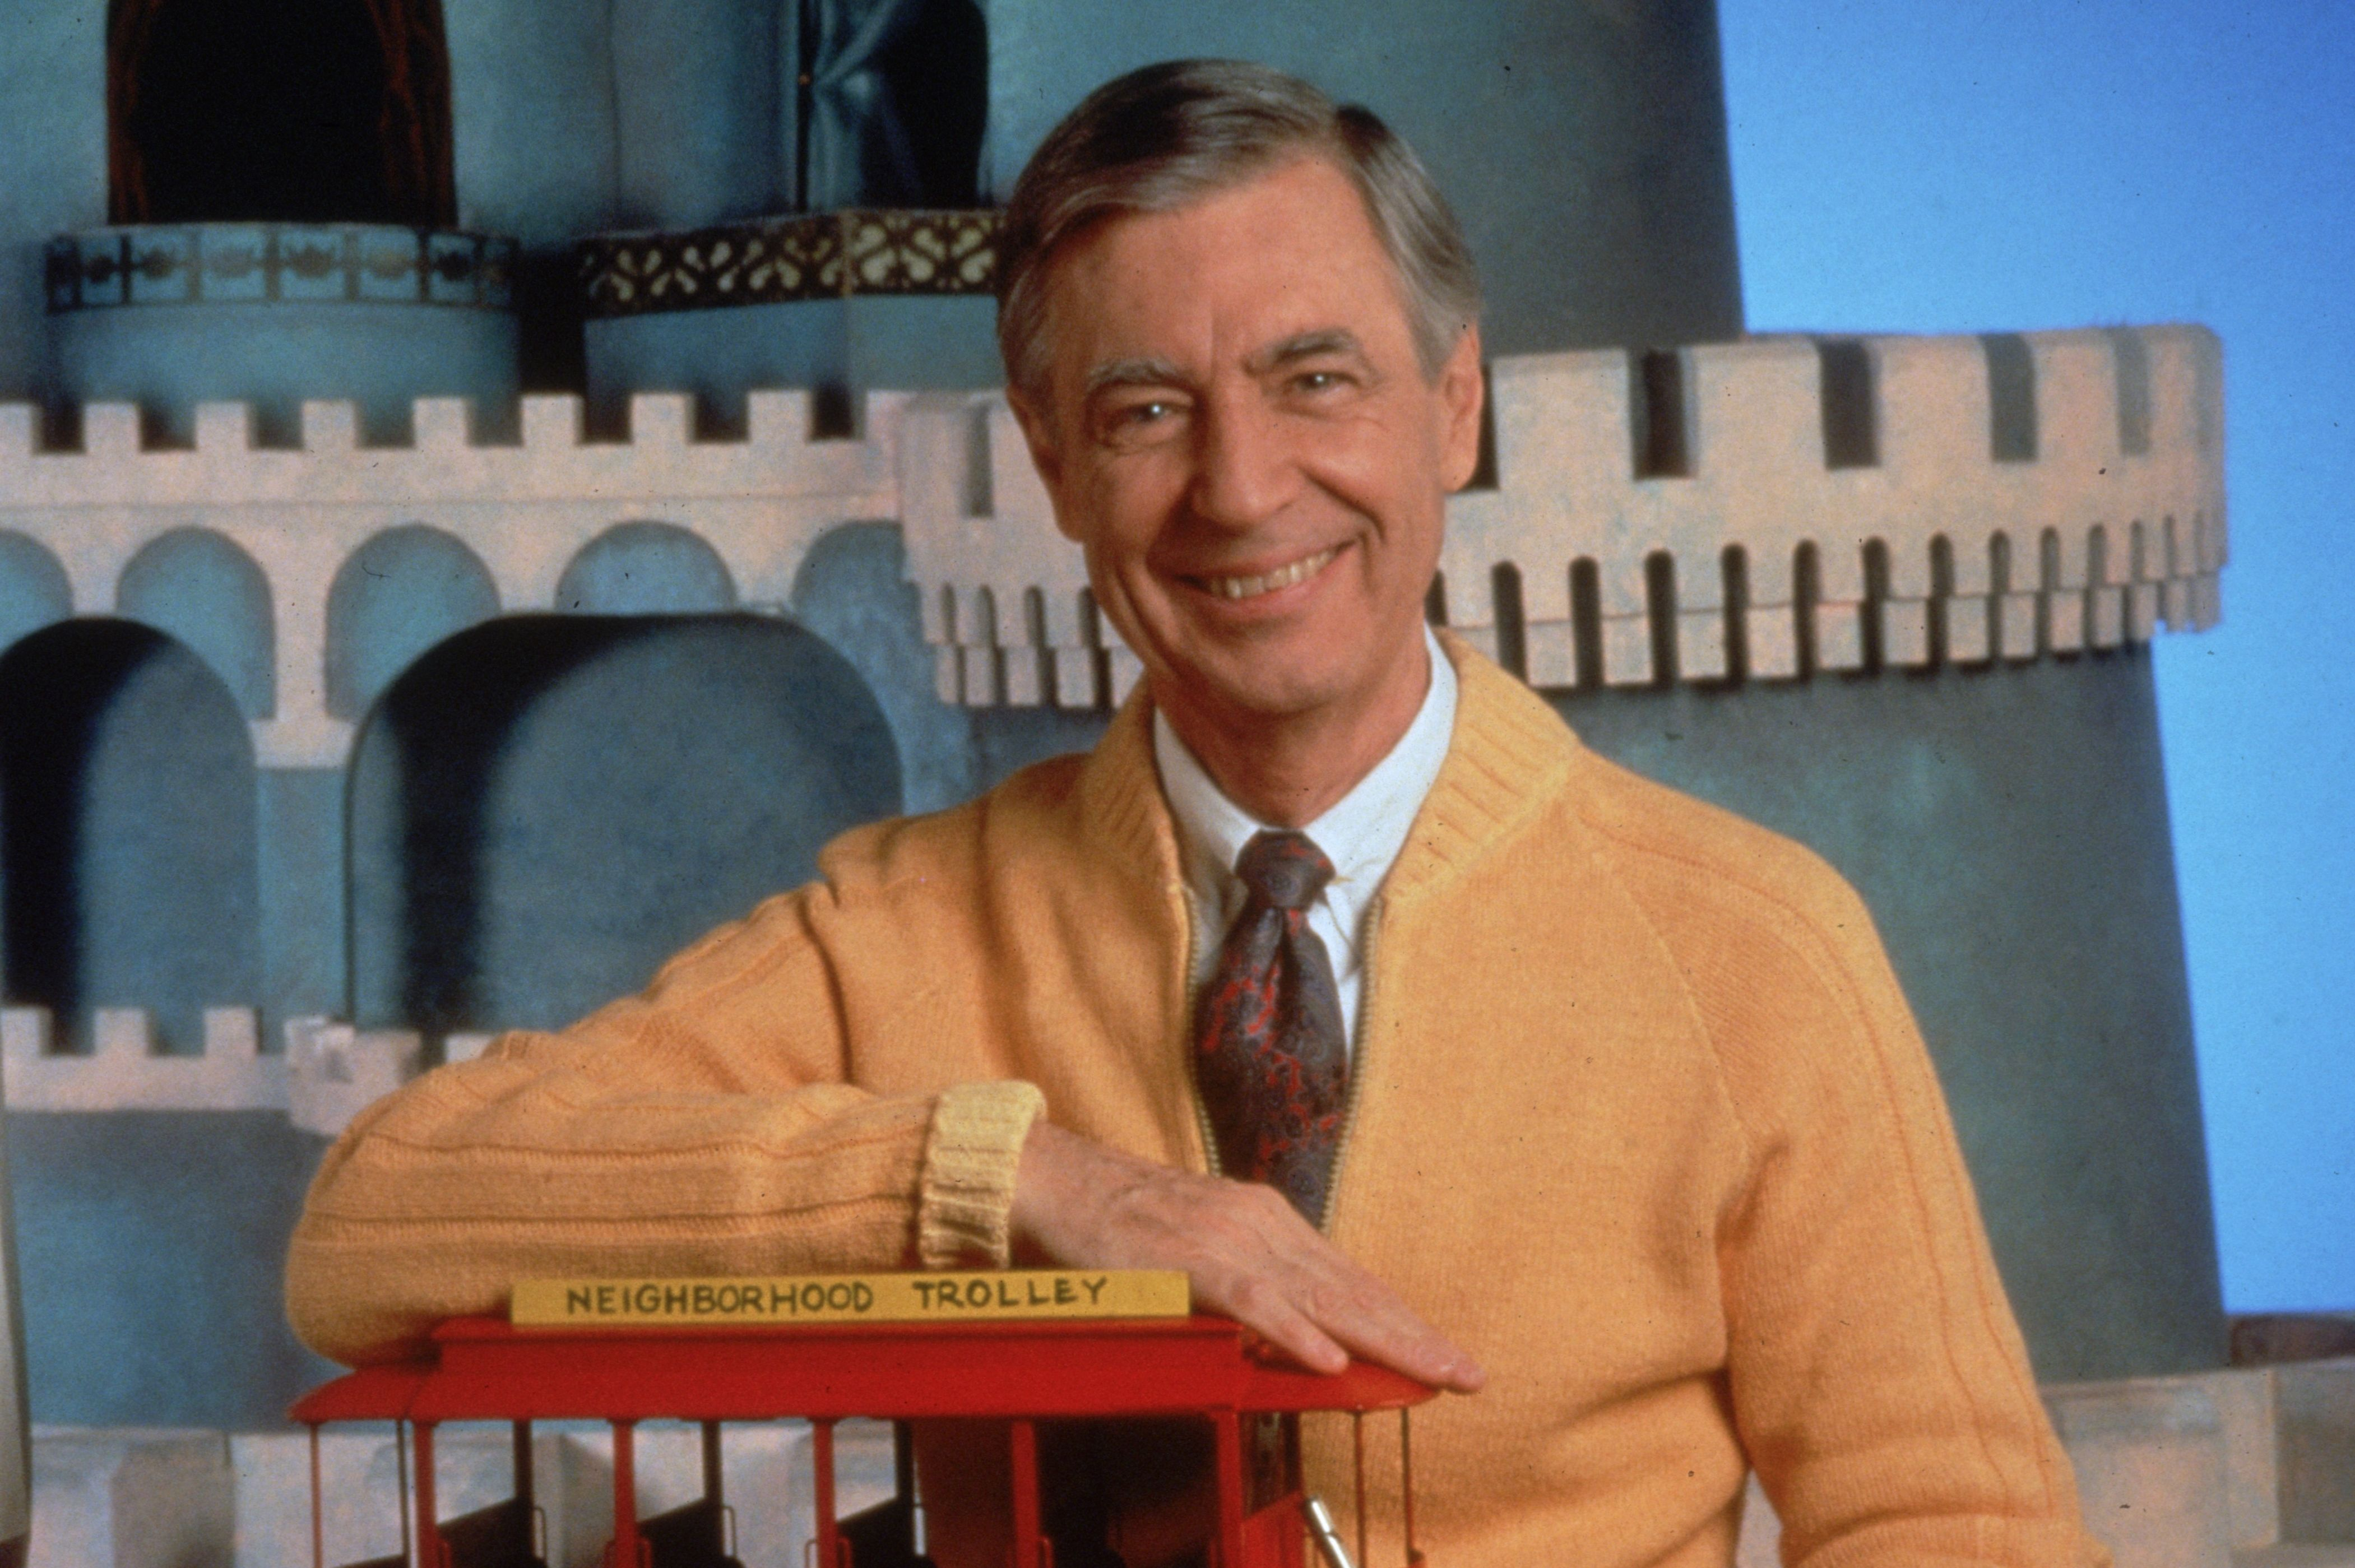 Revisit Your Childhood With a Clip From Mr. Rogers Documentary 'Won't You Be My Neighbor?'